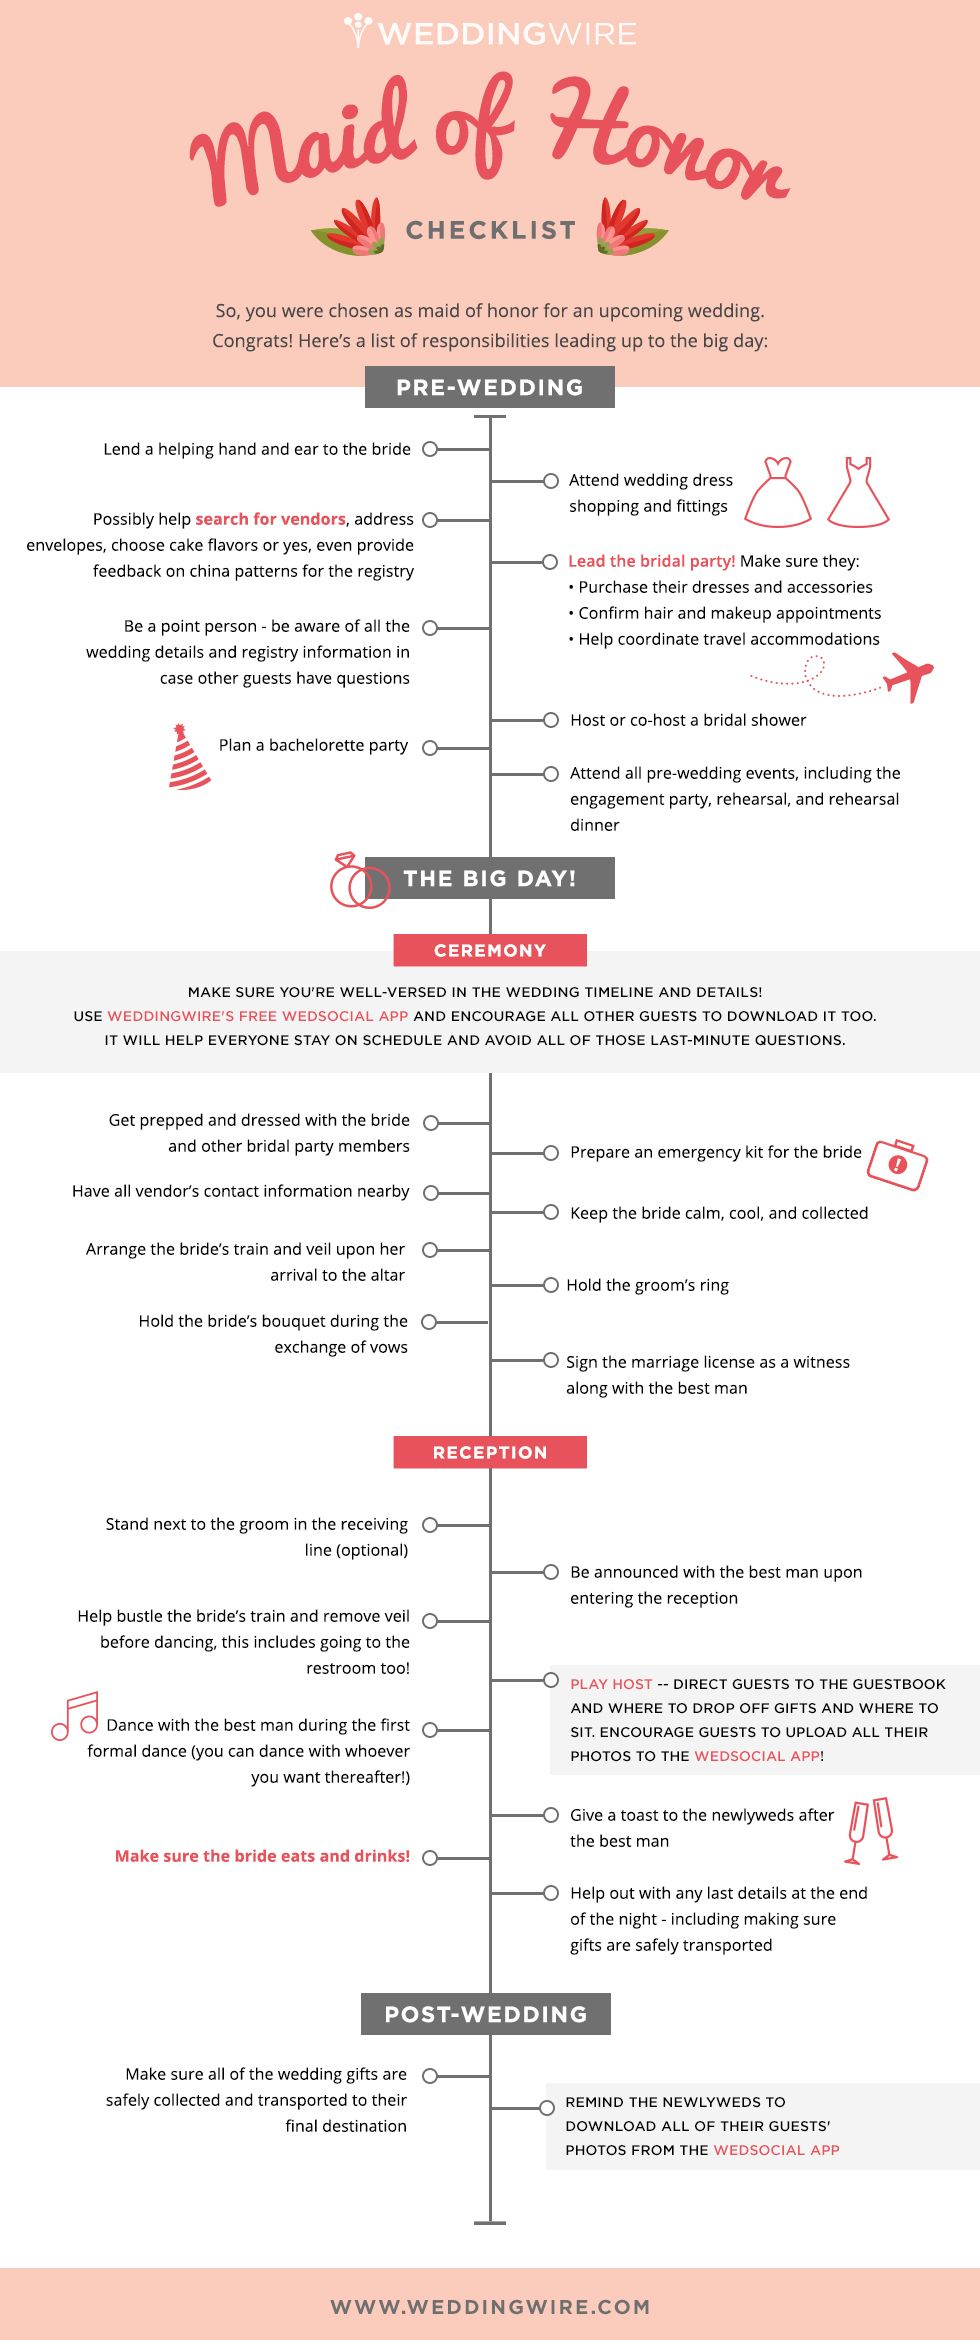 Everything You Need To Know About Being An All Star Maid Of Honor In One Easy Checklist